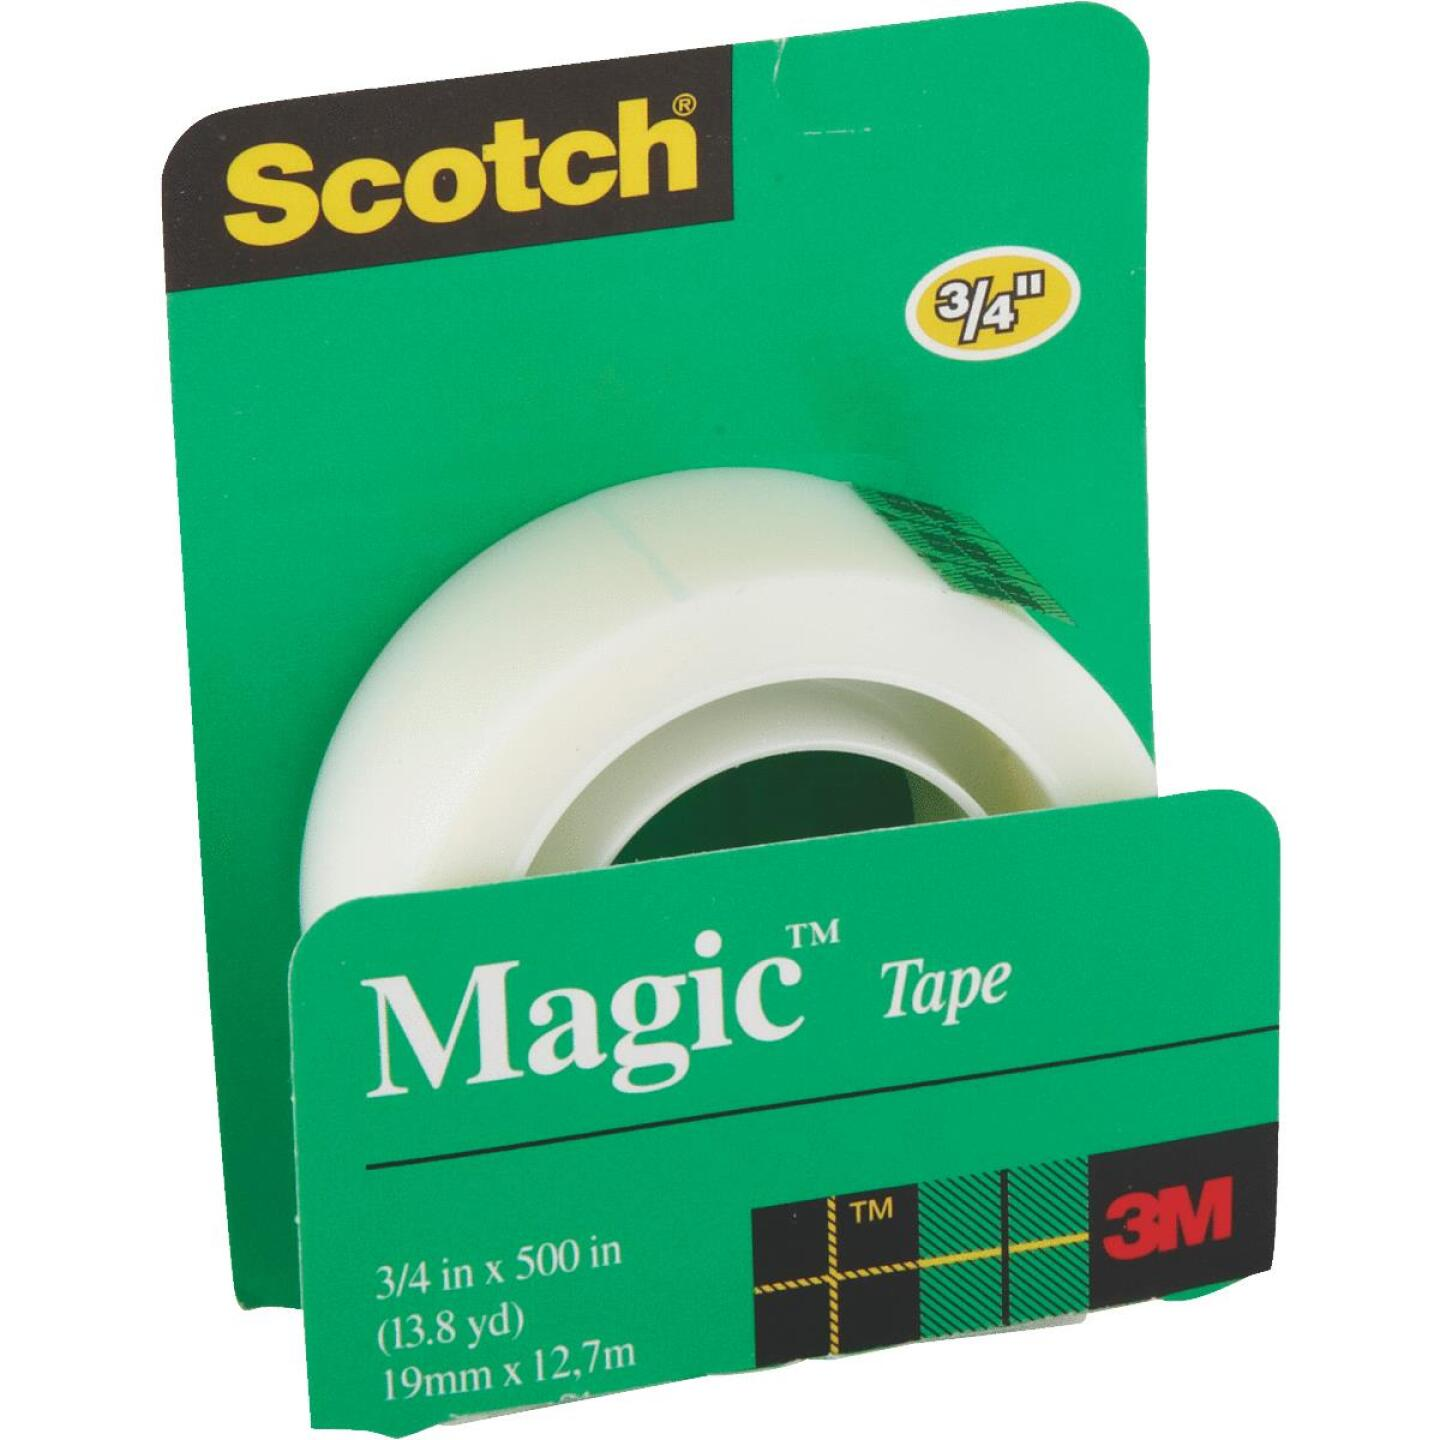 3M Scotch 3/4 In. x 500 In. Magic Transparent Tape Refill Image 2